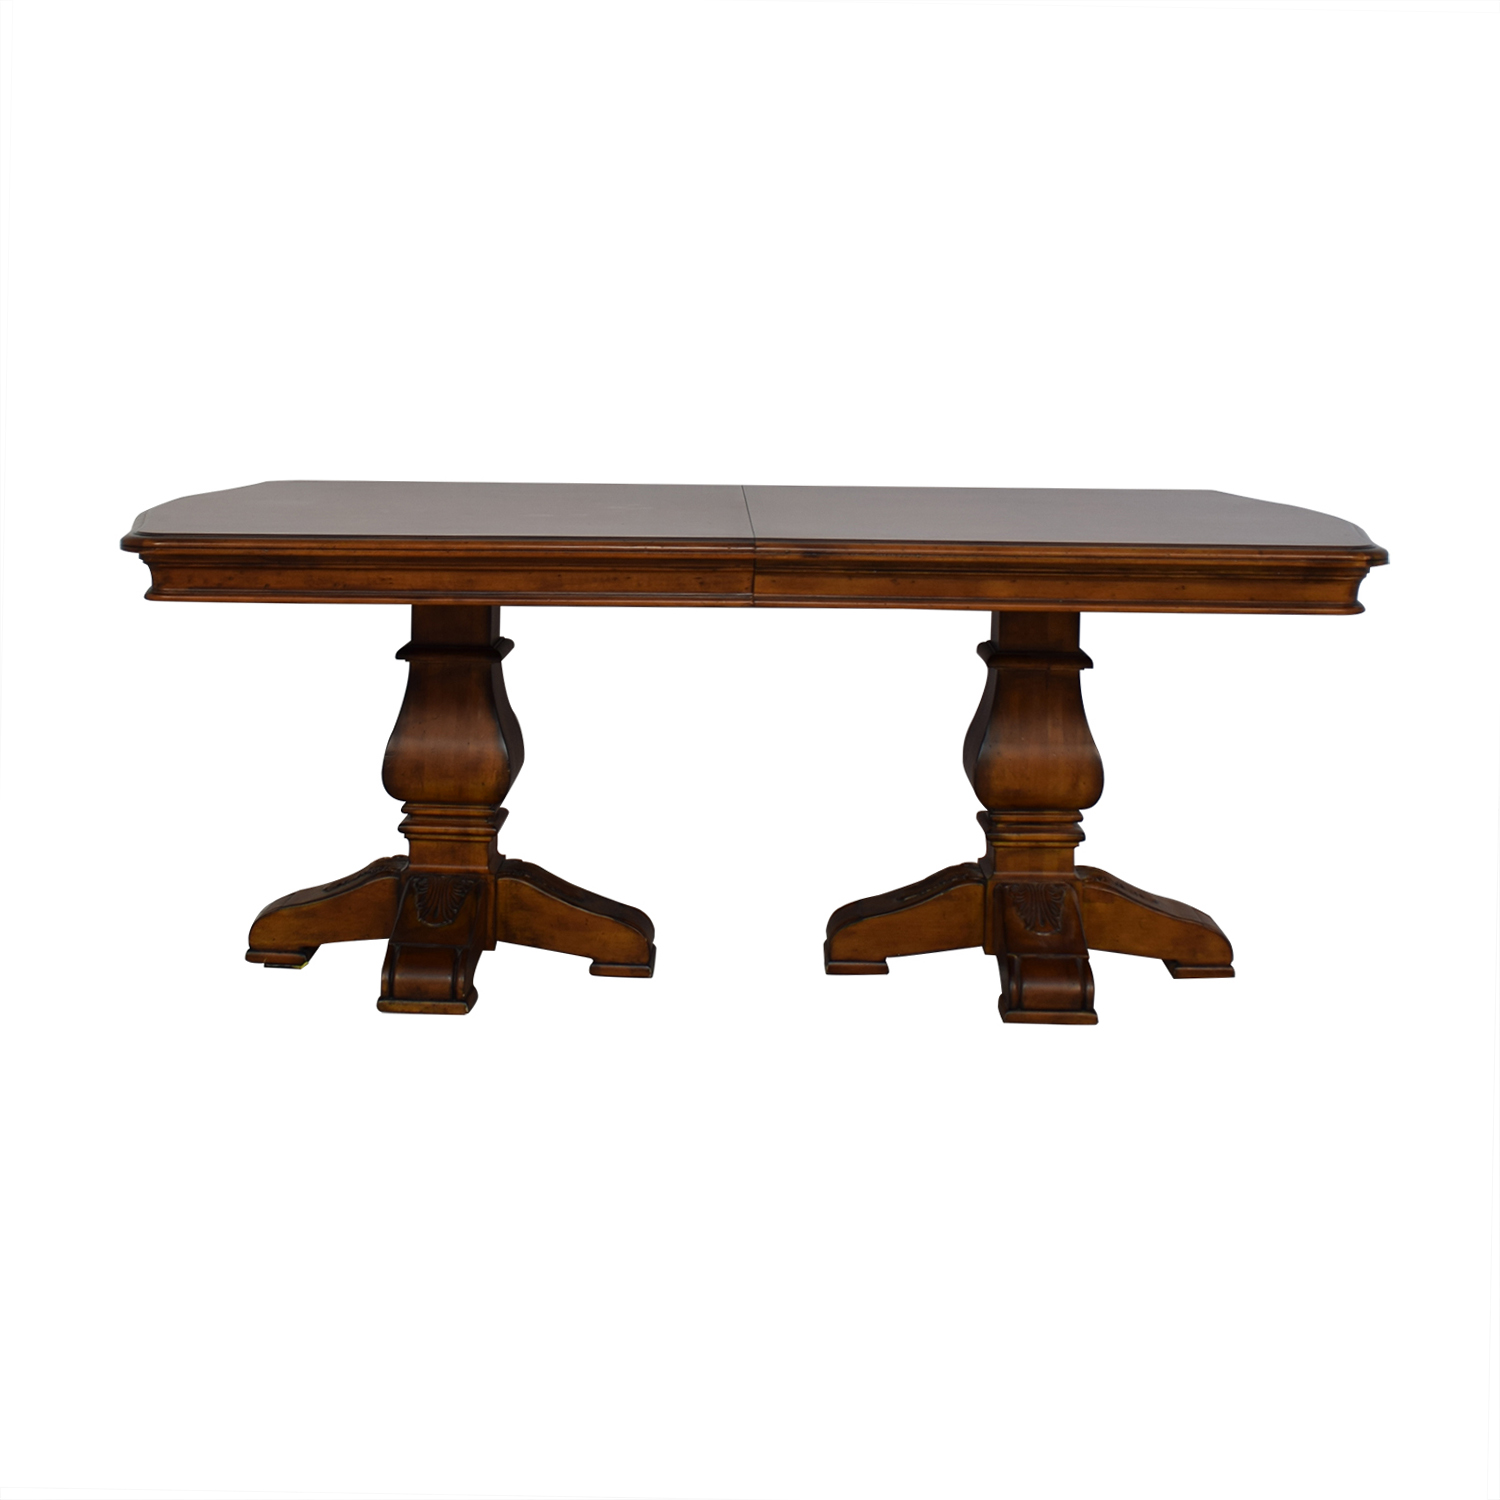 Ethan Allen Wooden Pedestal Dining Table / Dinner Tables